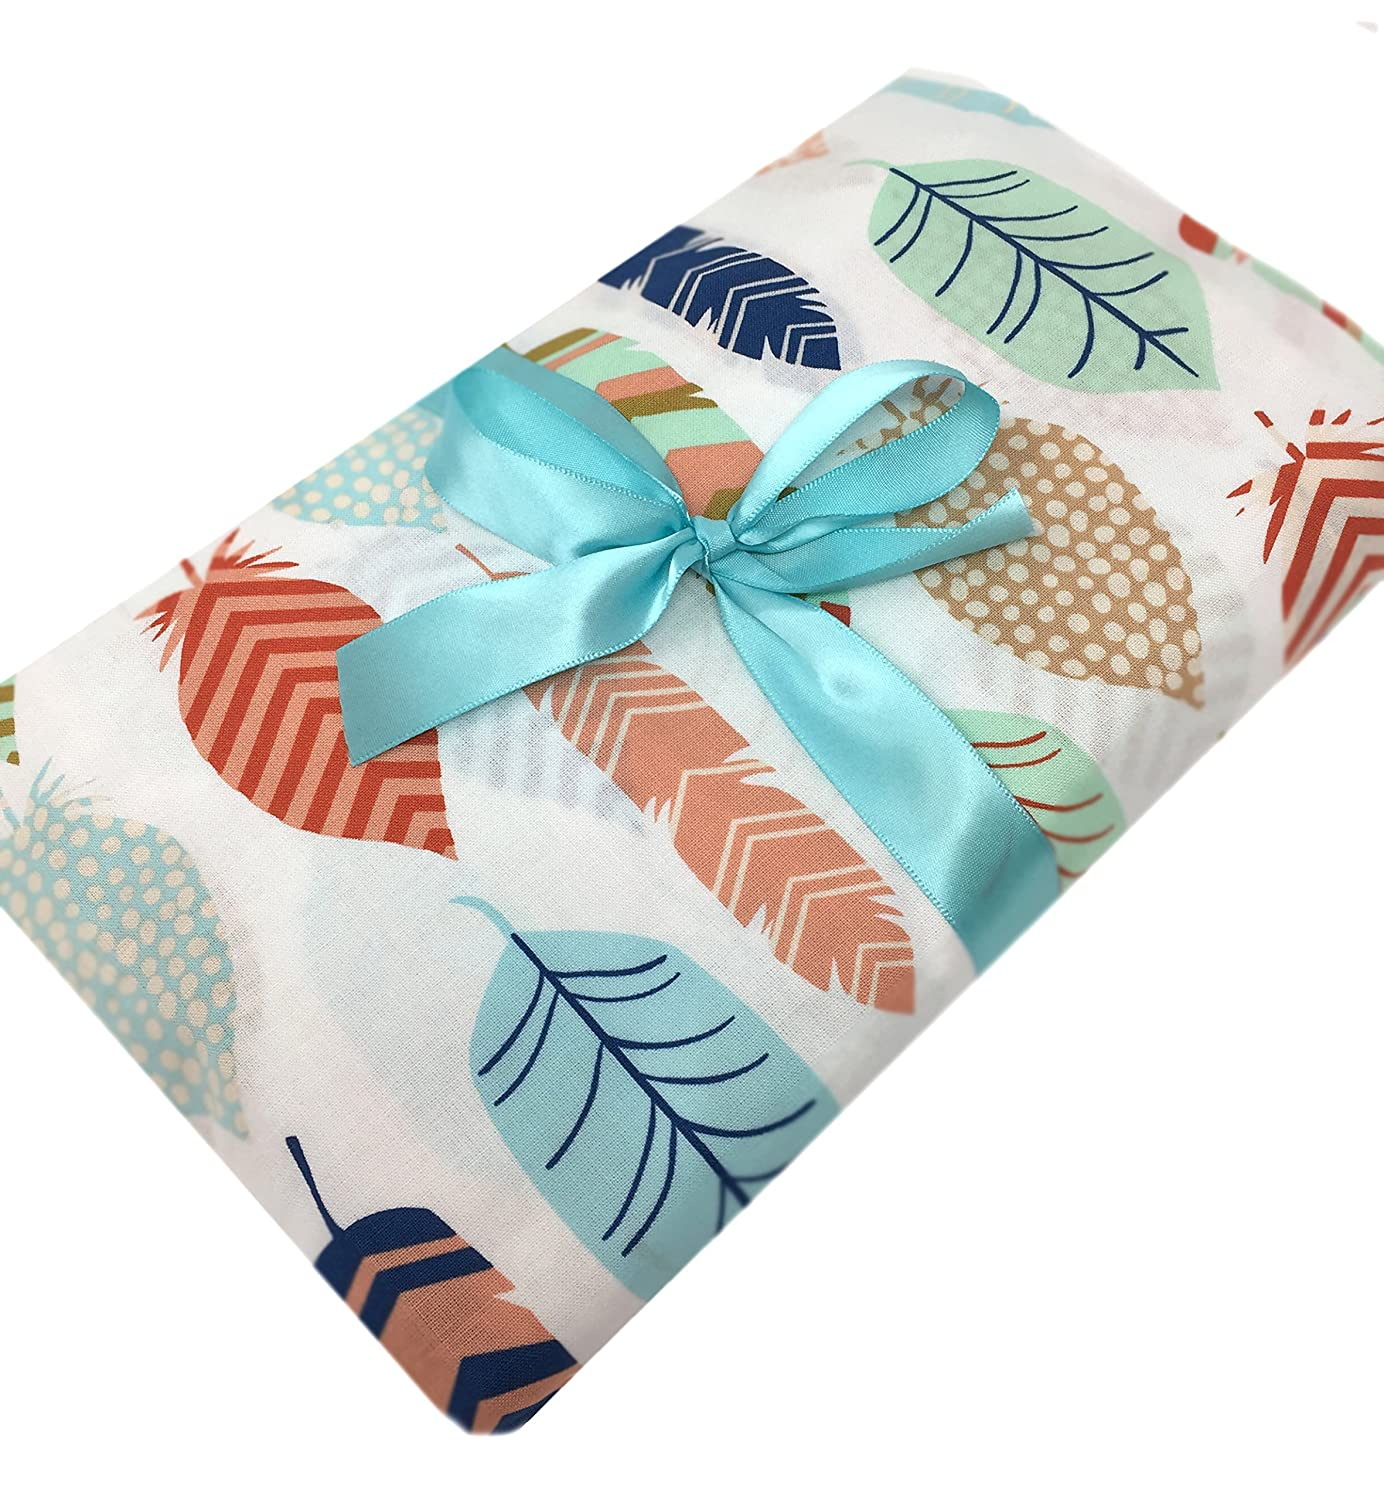 Feathers Fitted Crib Sheet Handmade in USA